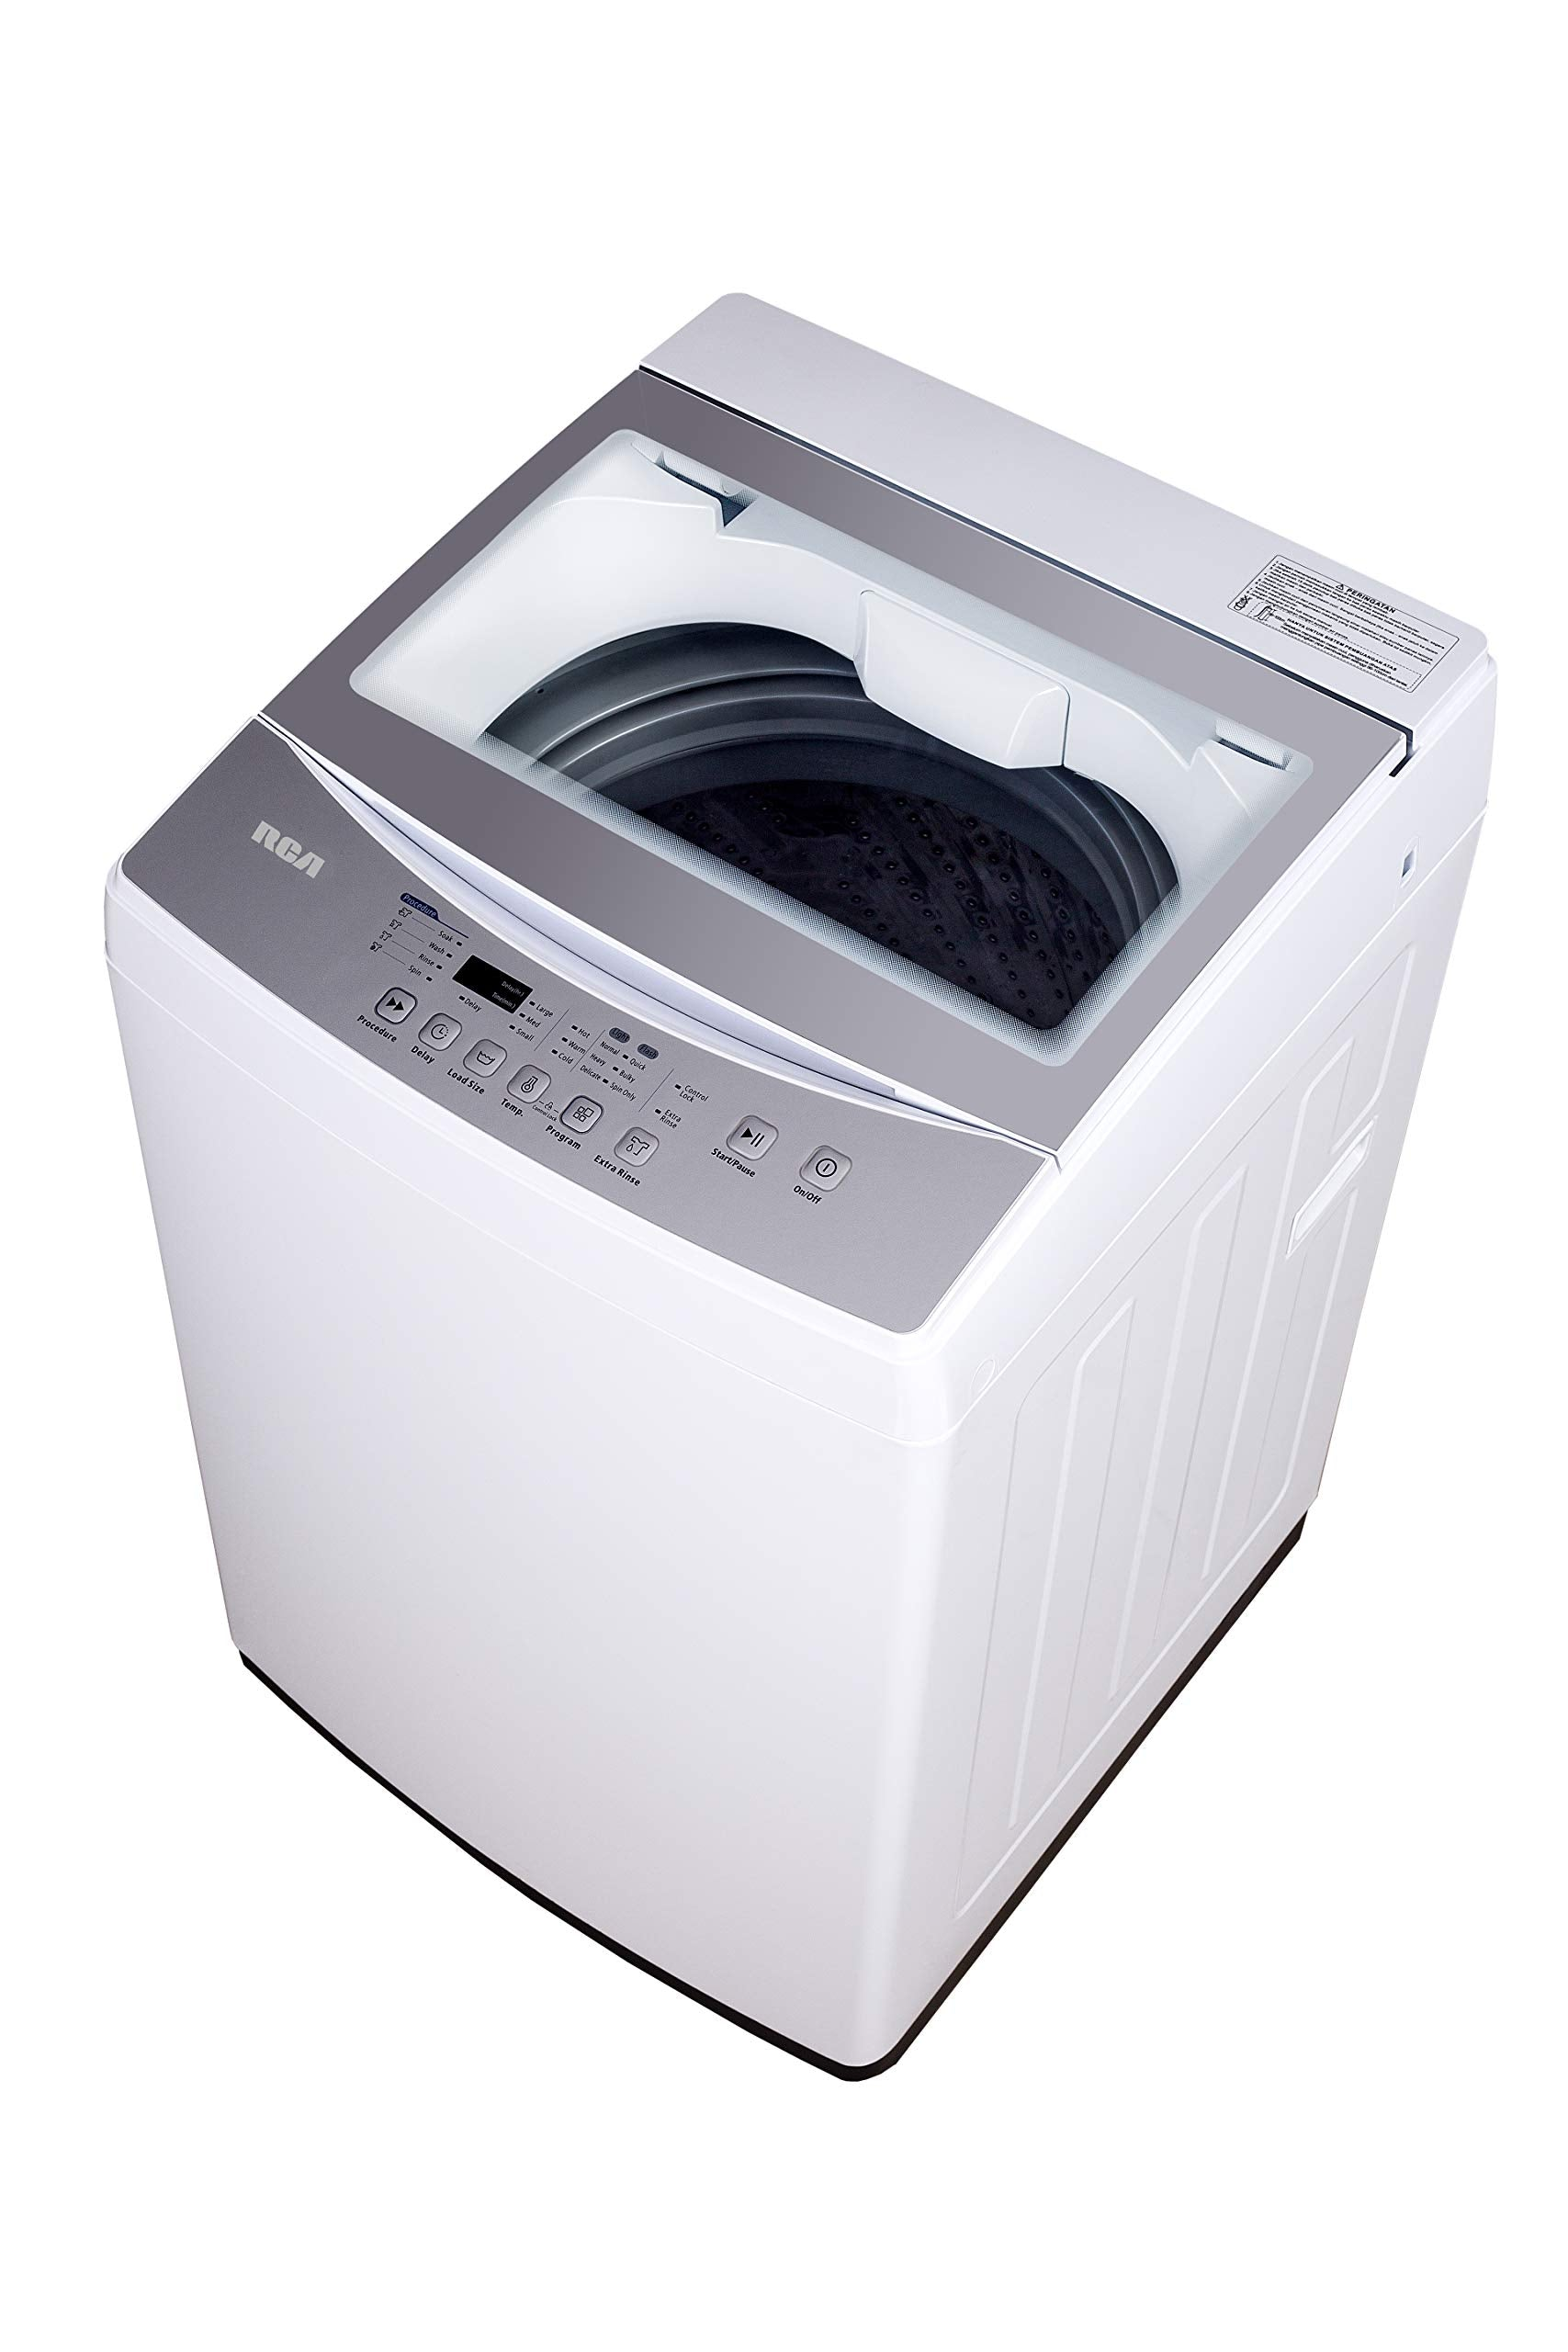 RCA 2.0 cu ft Portable Washer, White